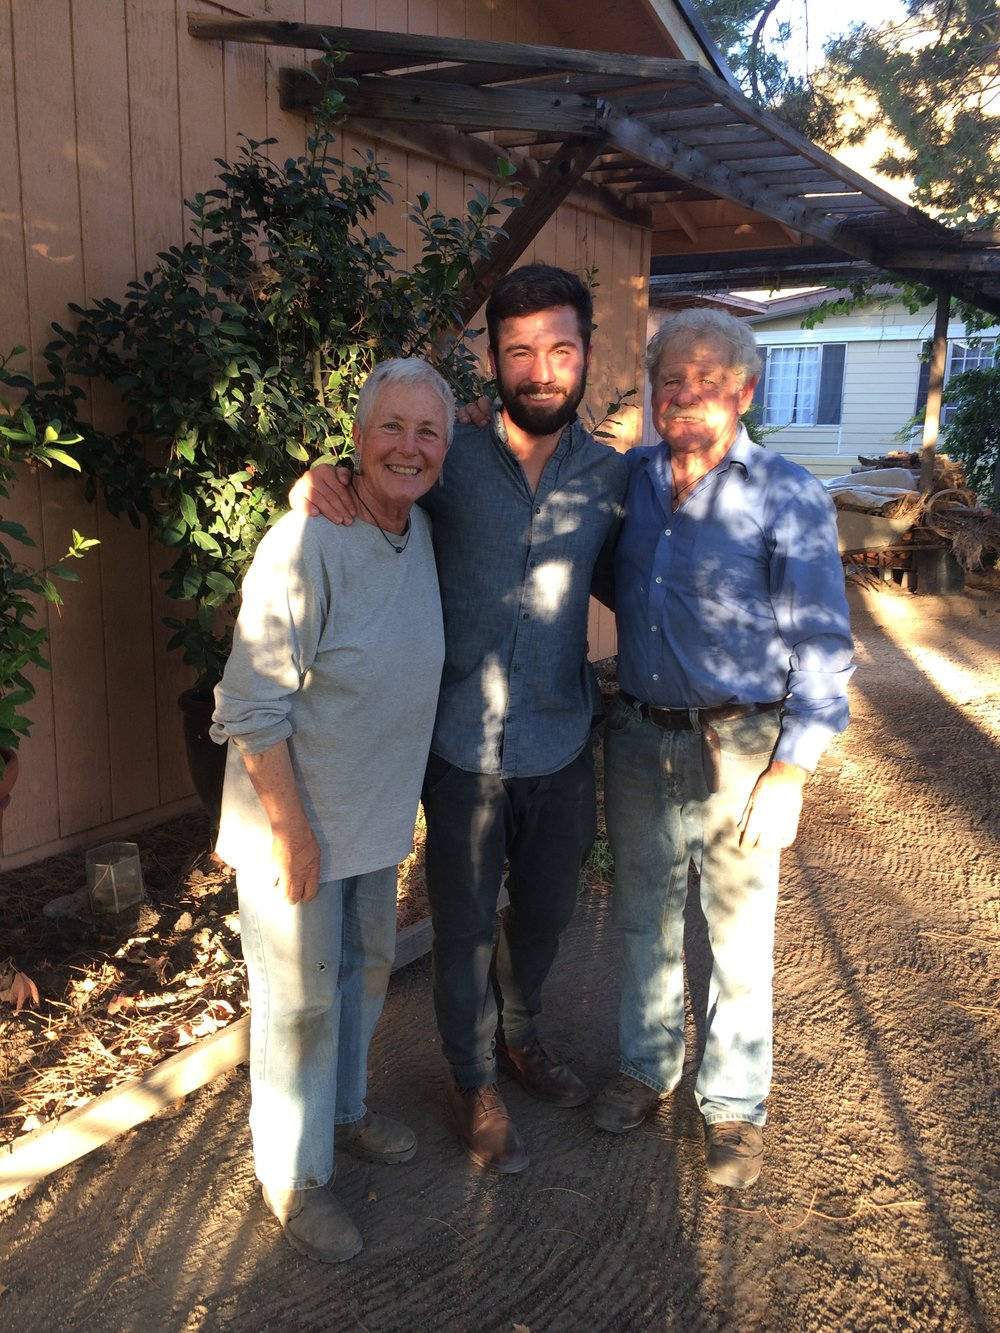 Me with Bill and Barbara at Windrose Farm.  Two amazing farmers, mentors and friends.